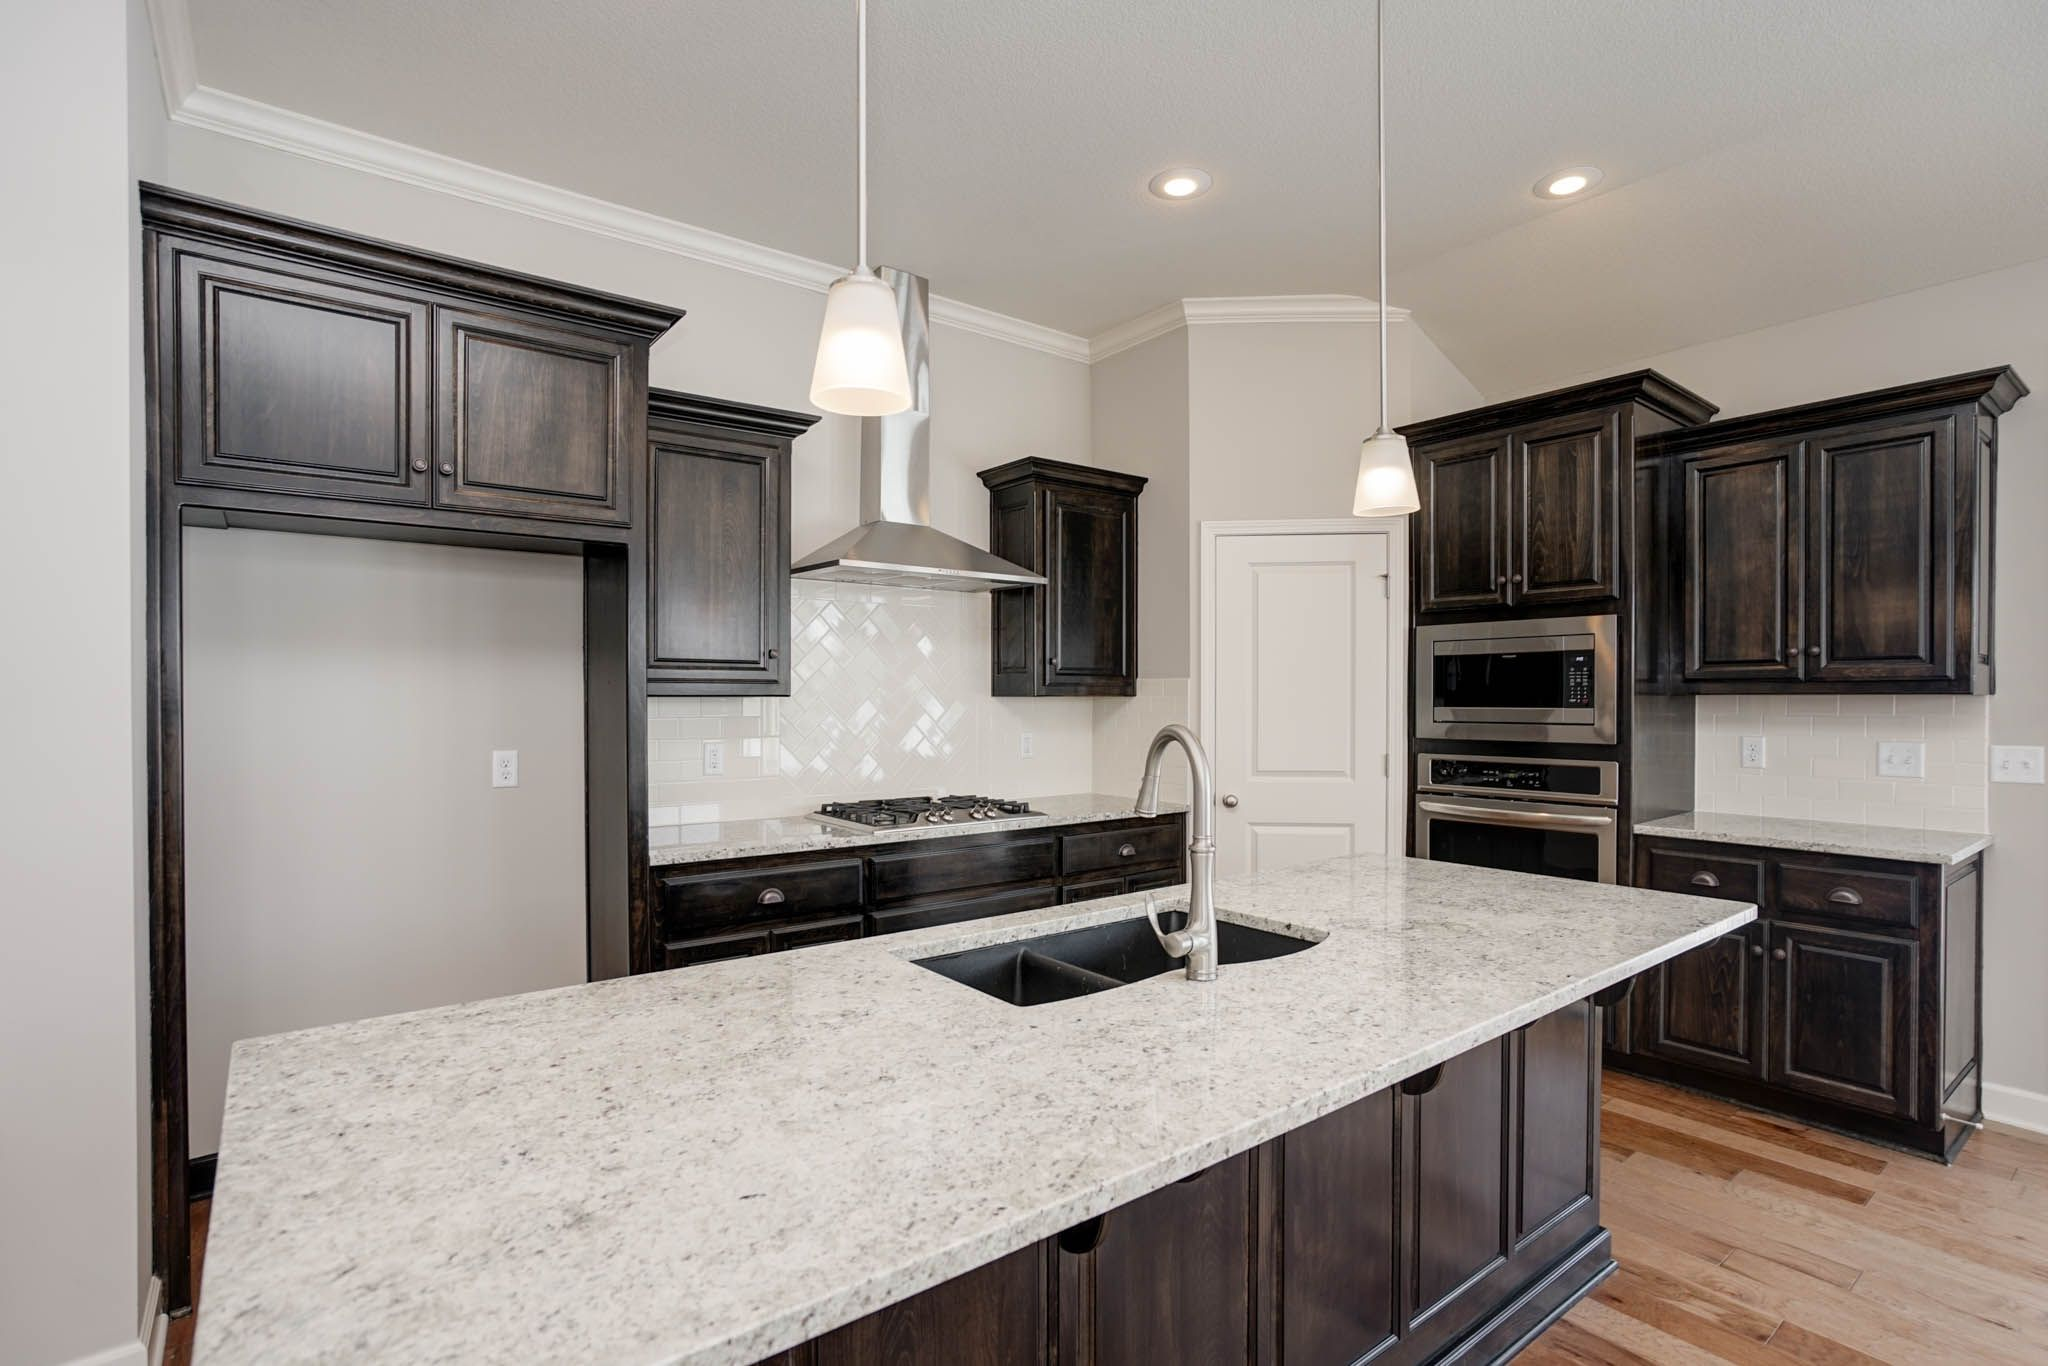 Kitchen featured in the Willowbrook By Summit Homes in Kansas City, MO